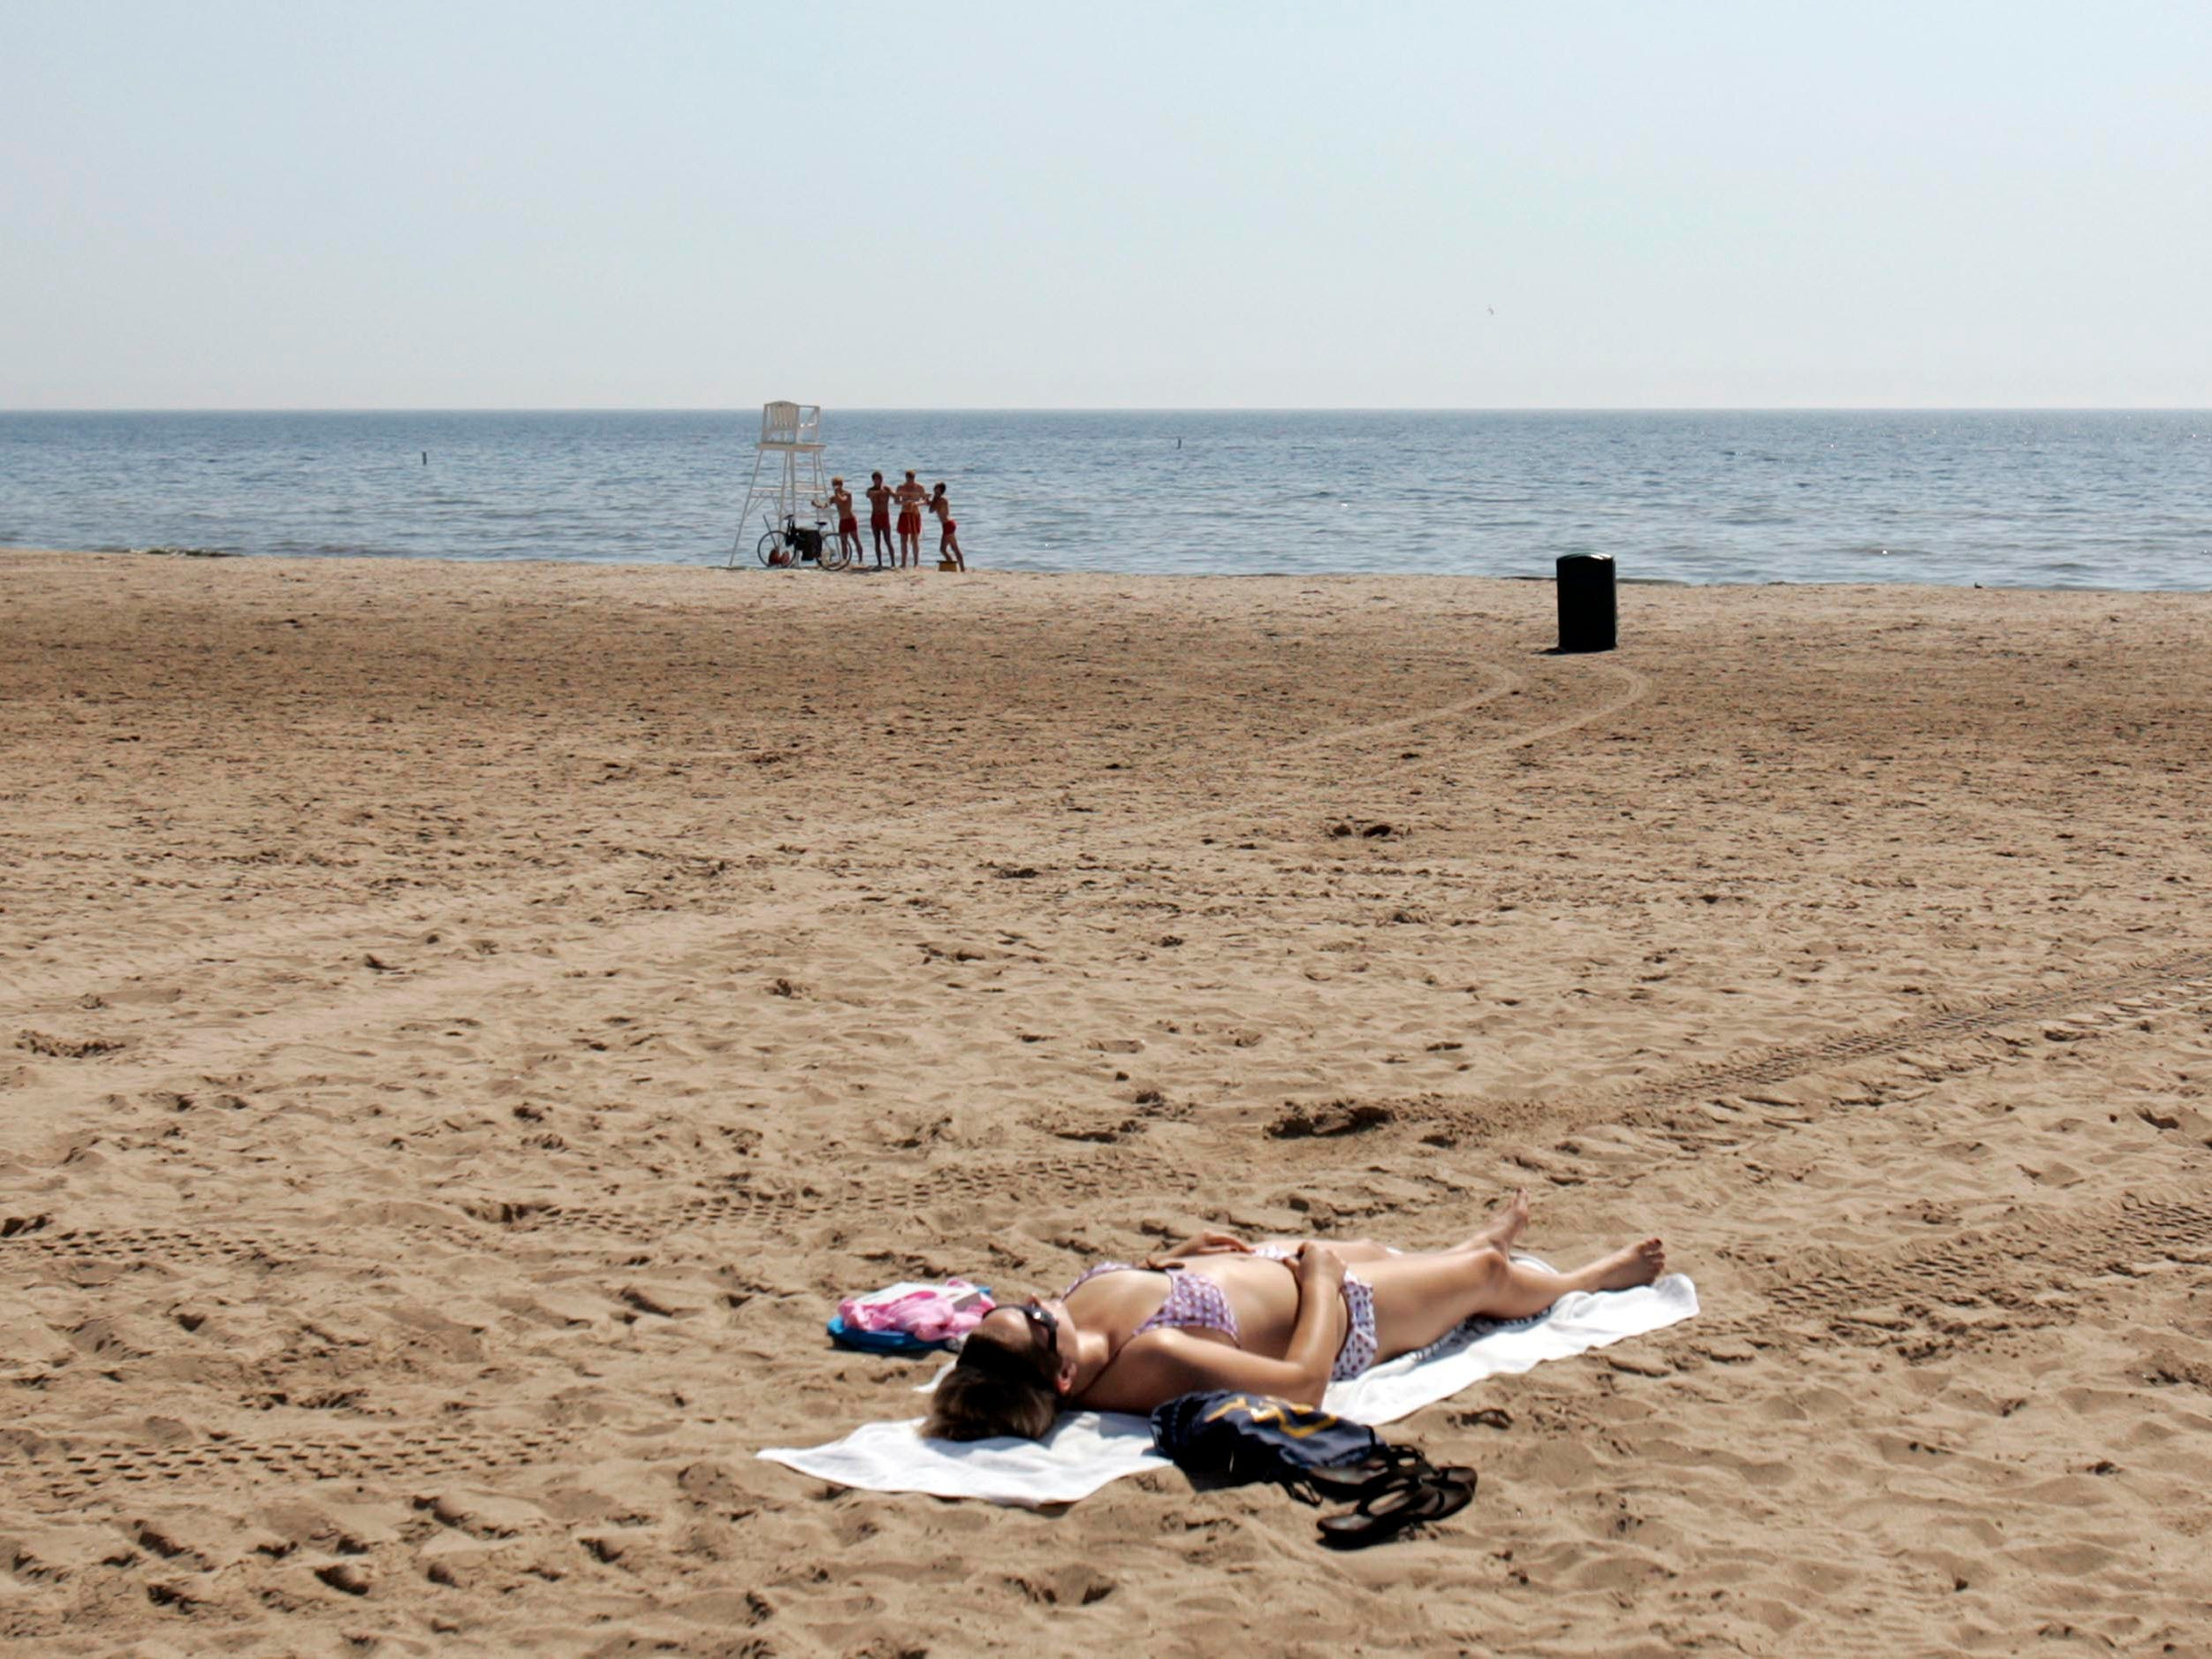 Chelsey Foscato, 21, a senior at Marquette University, has Bradford Beach all to herself.